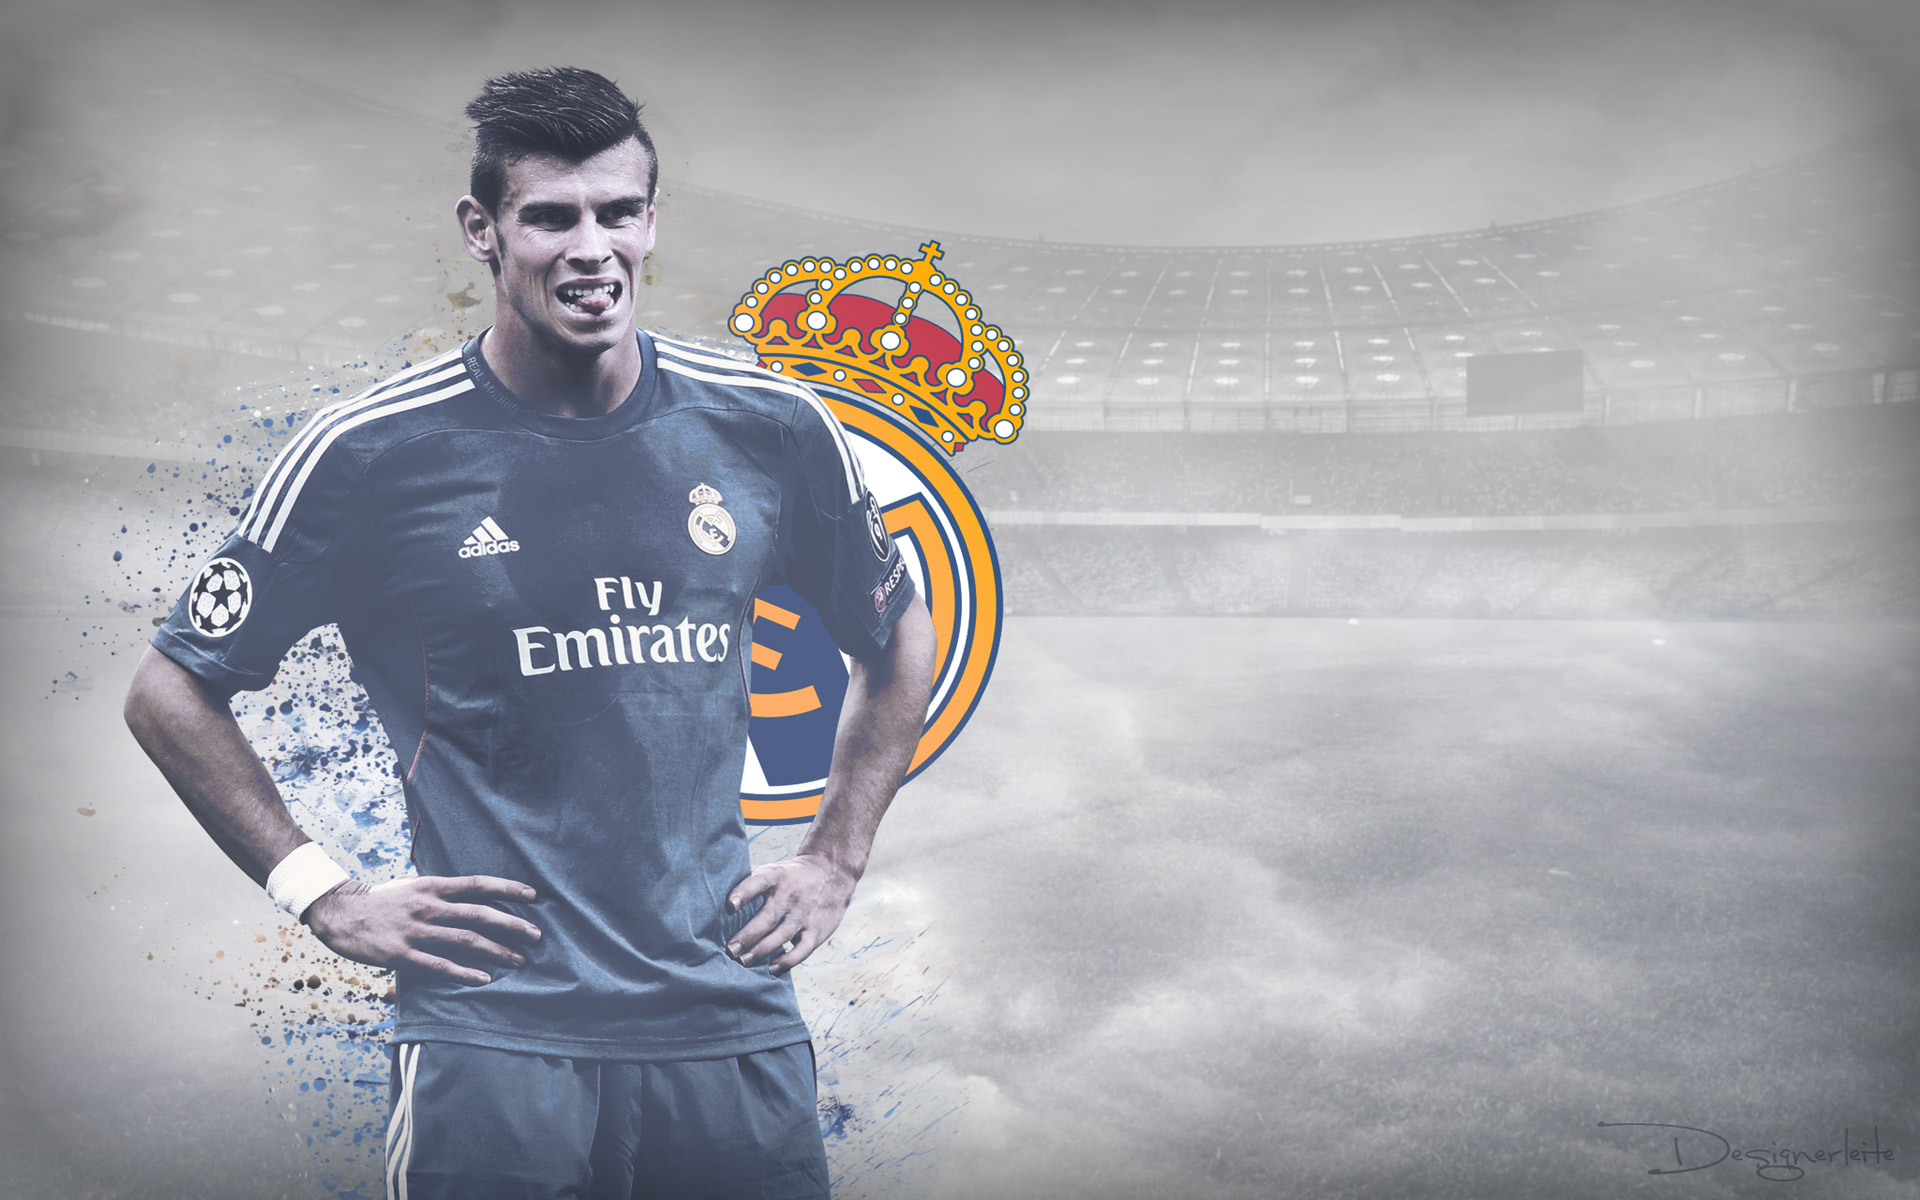 Gareth bale wallpapers high resolution and quality download gareth bale widescreen voltagebd Images